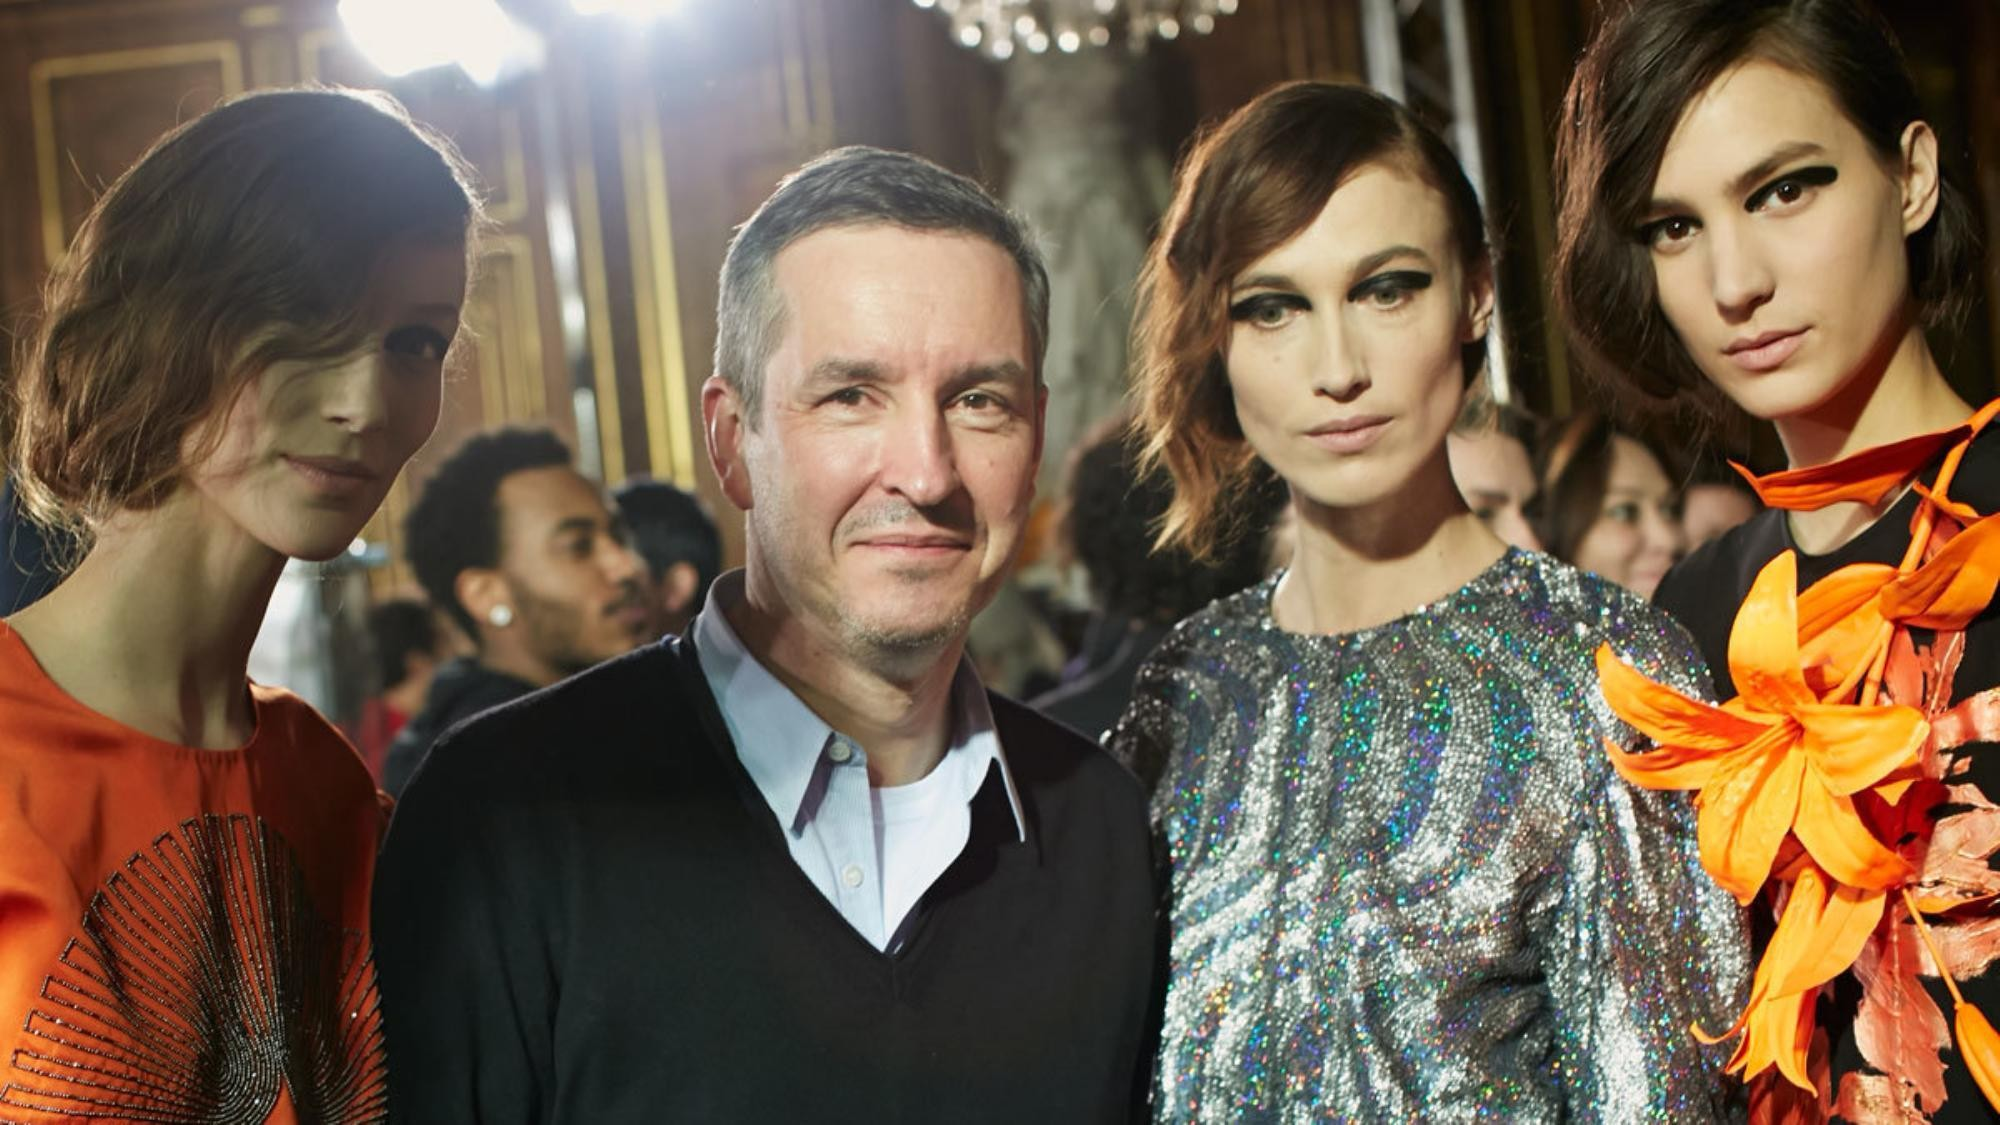 a dries van noten documentary is set for release in 2017